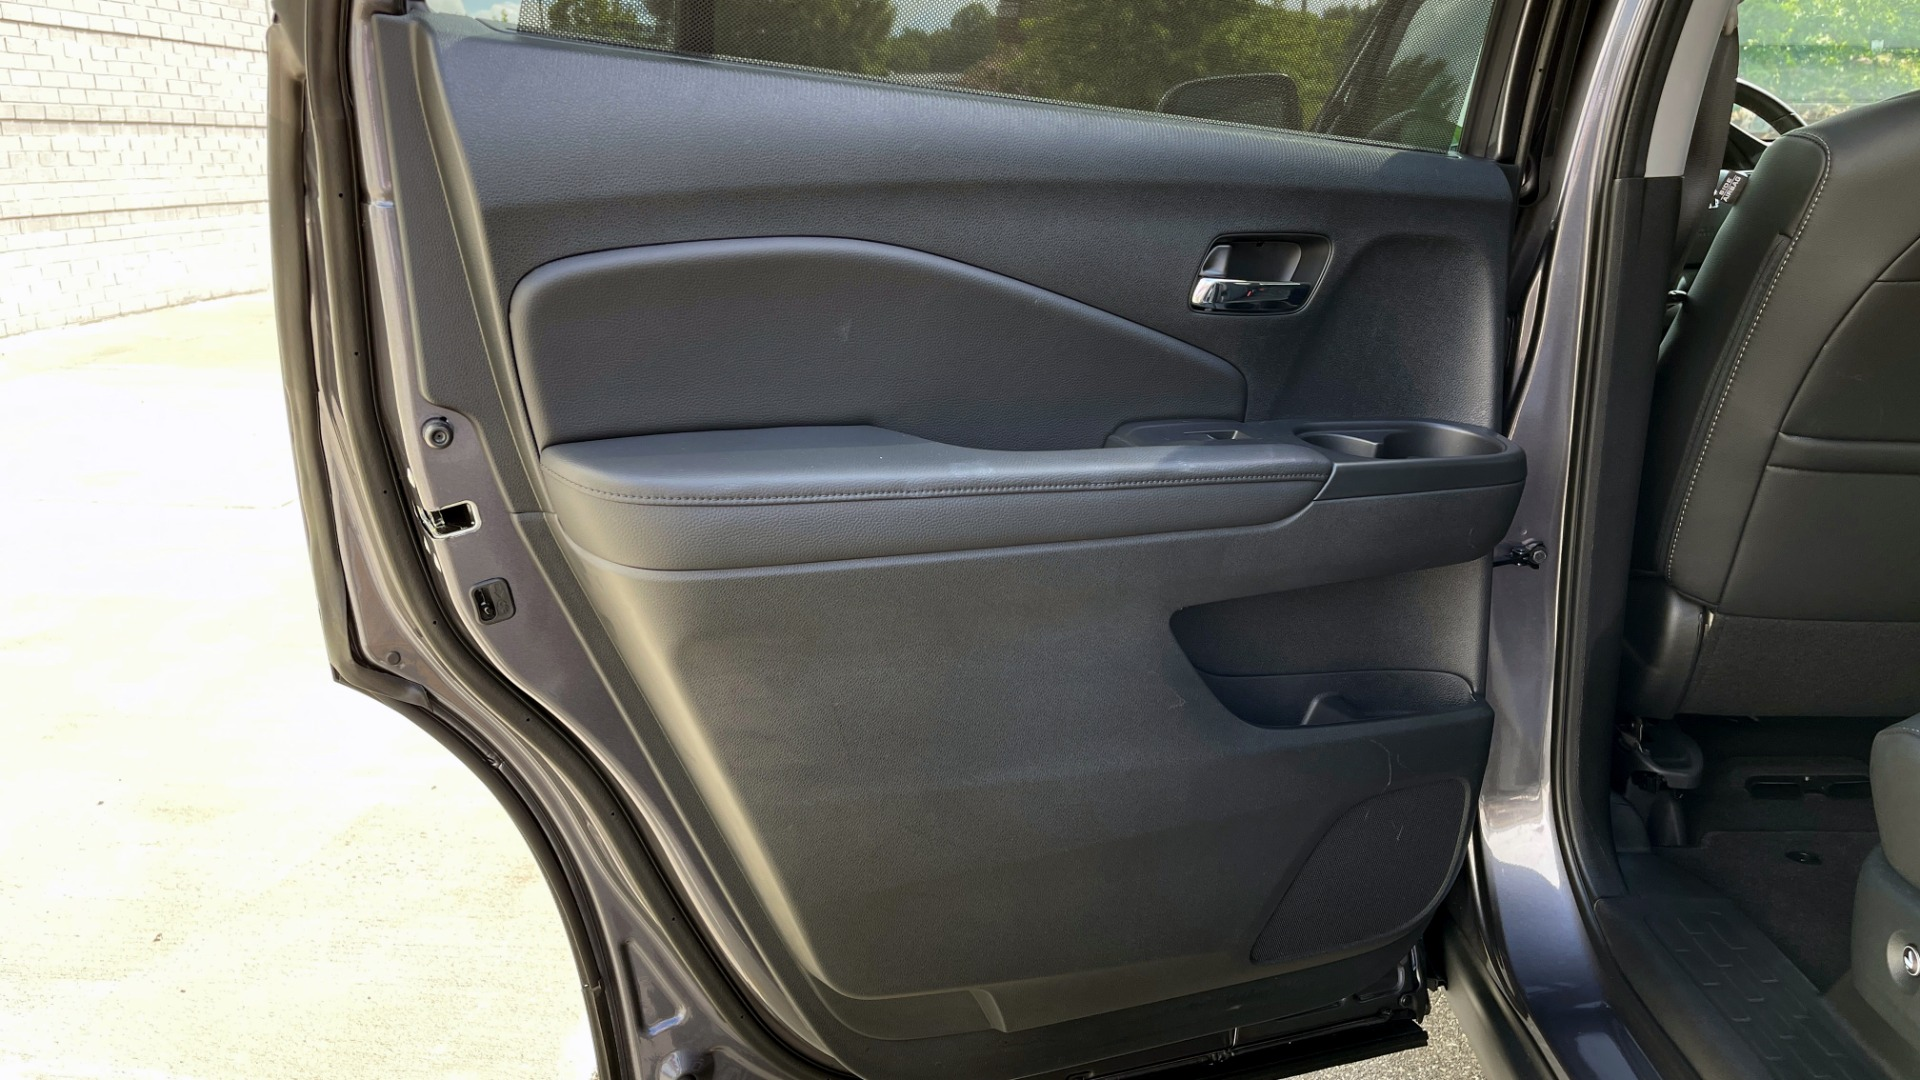 Used 2021 Honda PILOT SE / 3.5L V6 / 9-SPD AUTO / SUNROOF / 3-ROW / REARVIEW for sale $38,795 at Formula Imports in Charlotte NC 28227 47